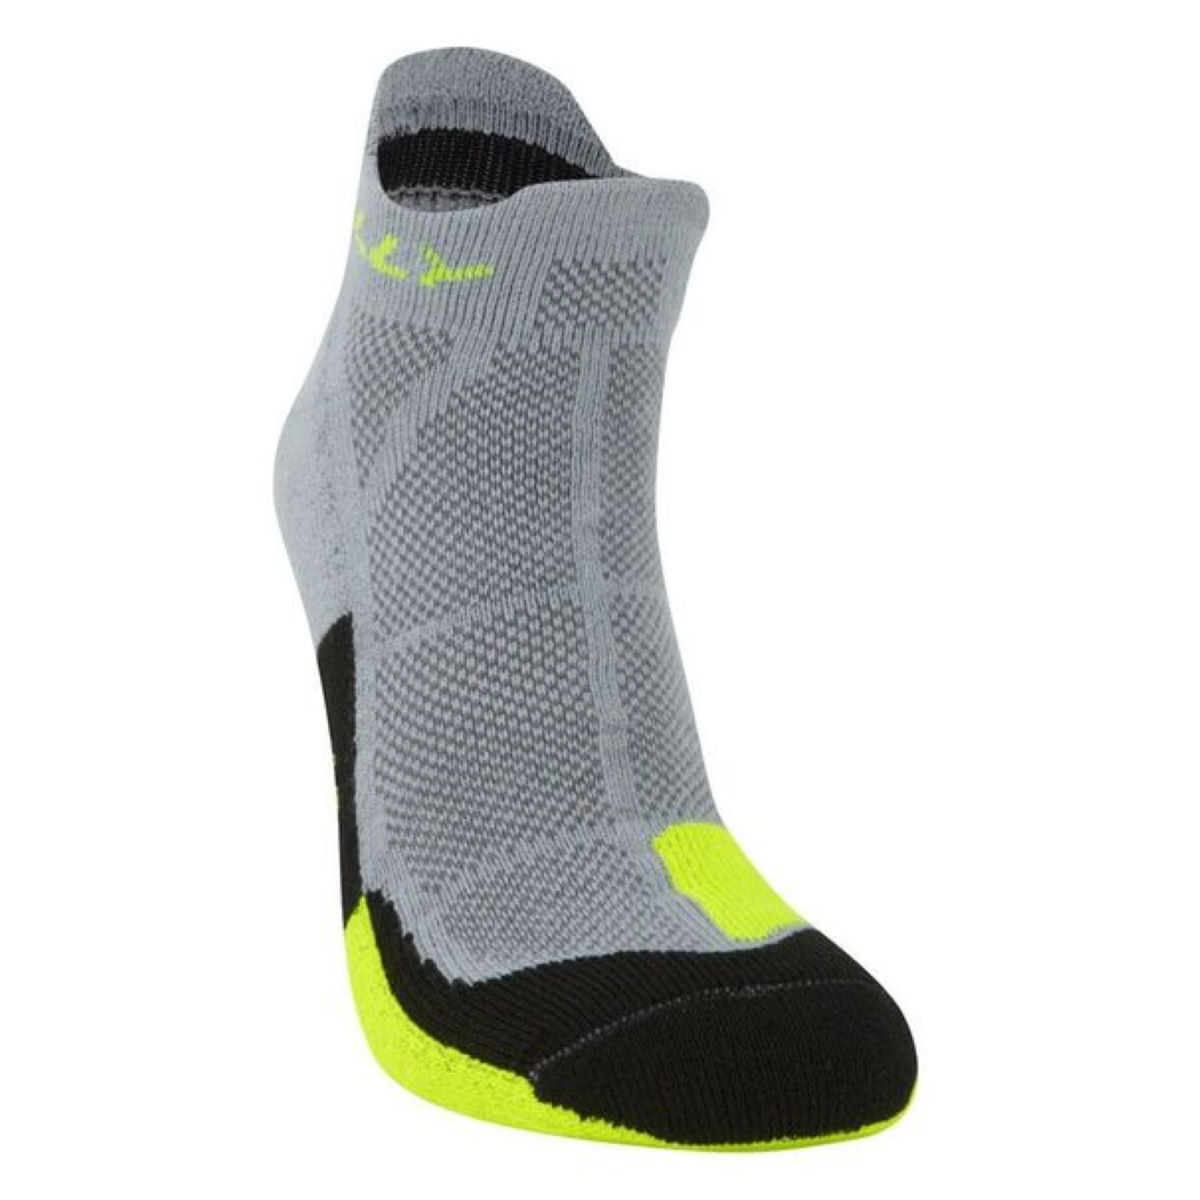 Socquettes Hilly Cushion - M Grey/FluoYellow/Blk  Chaussettes